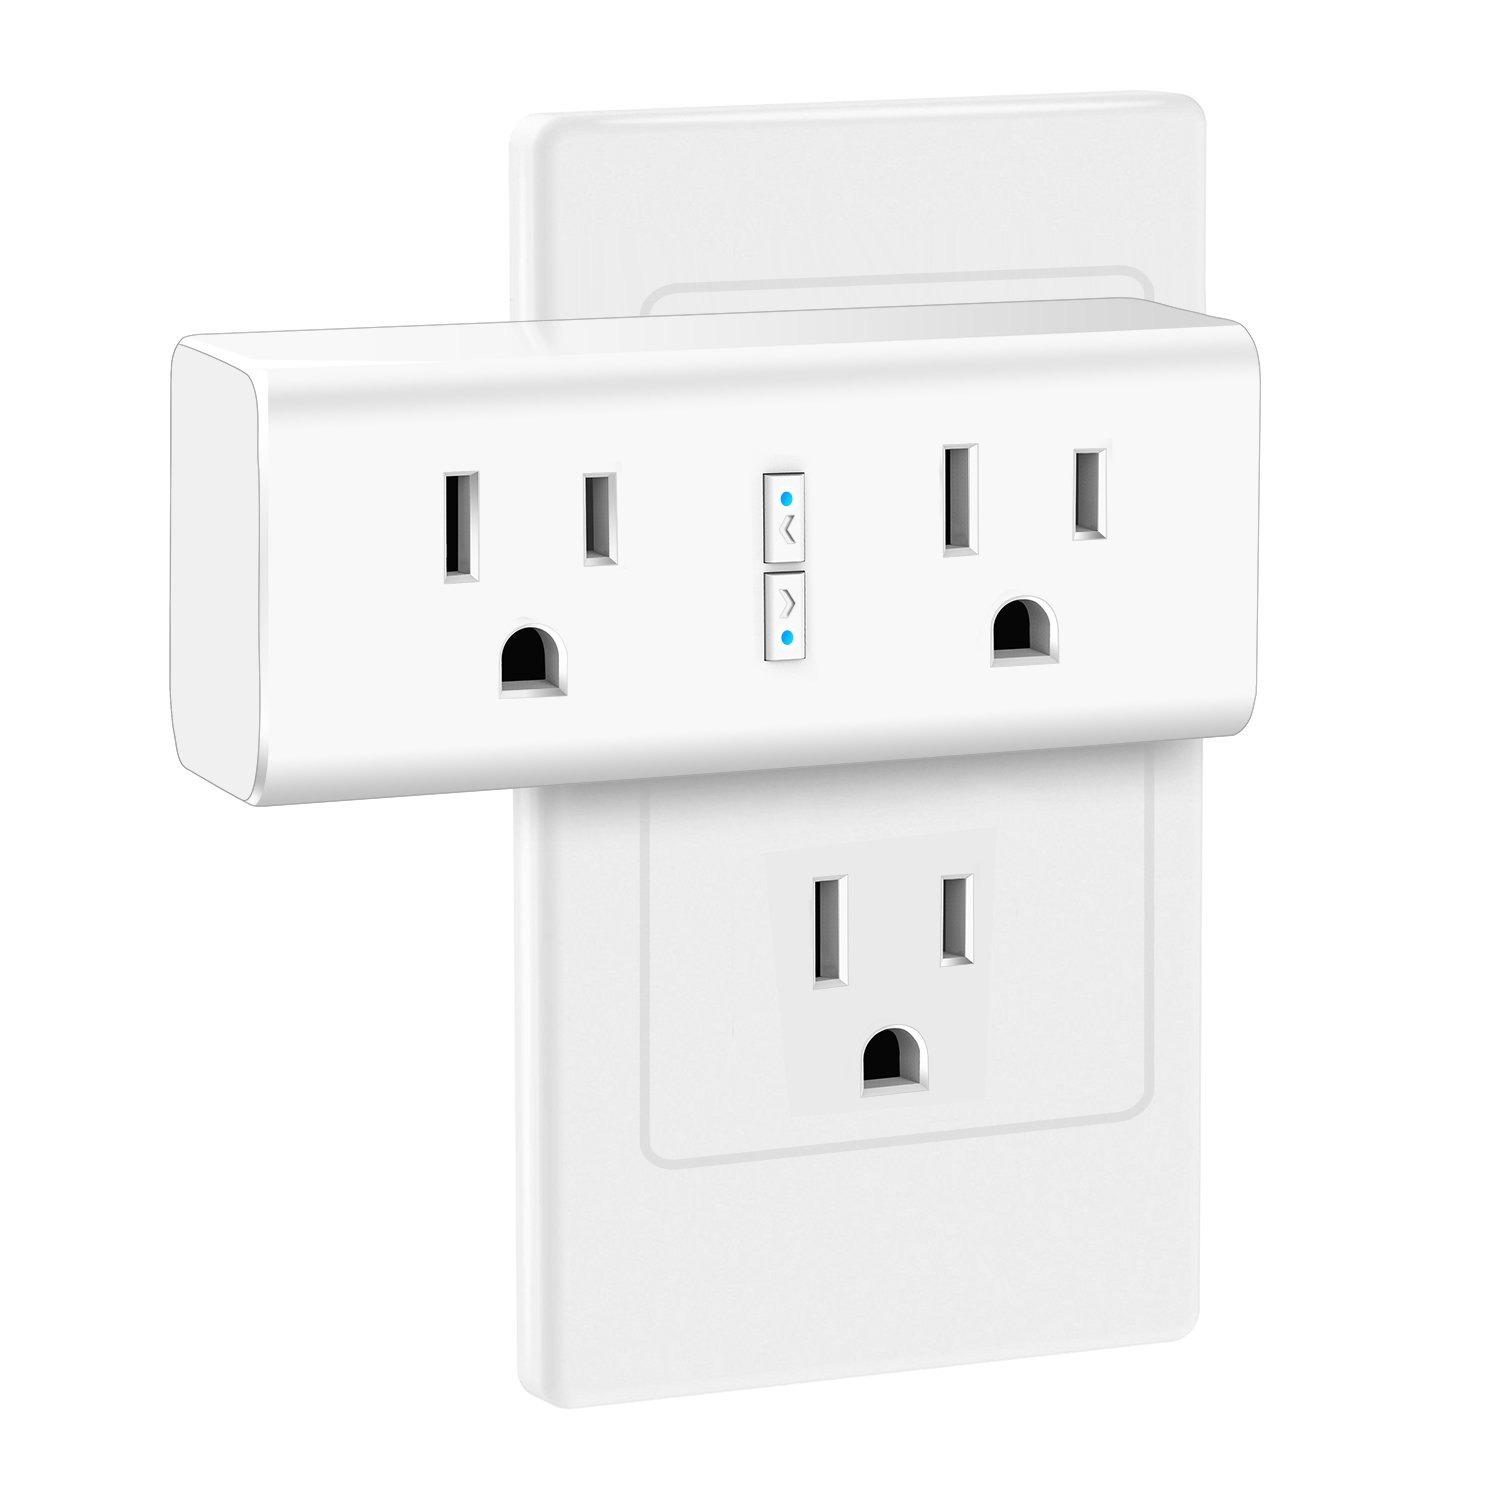 Anbes Wi-Fi Smart Plug Mini Outlet with Energy Monitoring, Alexa Plug Smart Socket Compatible with Alexa and Google Home, Timing Function, Dual Outlets Work Individually or in Groups